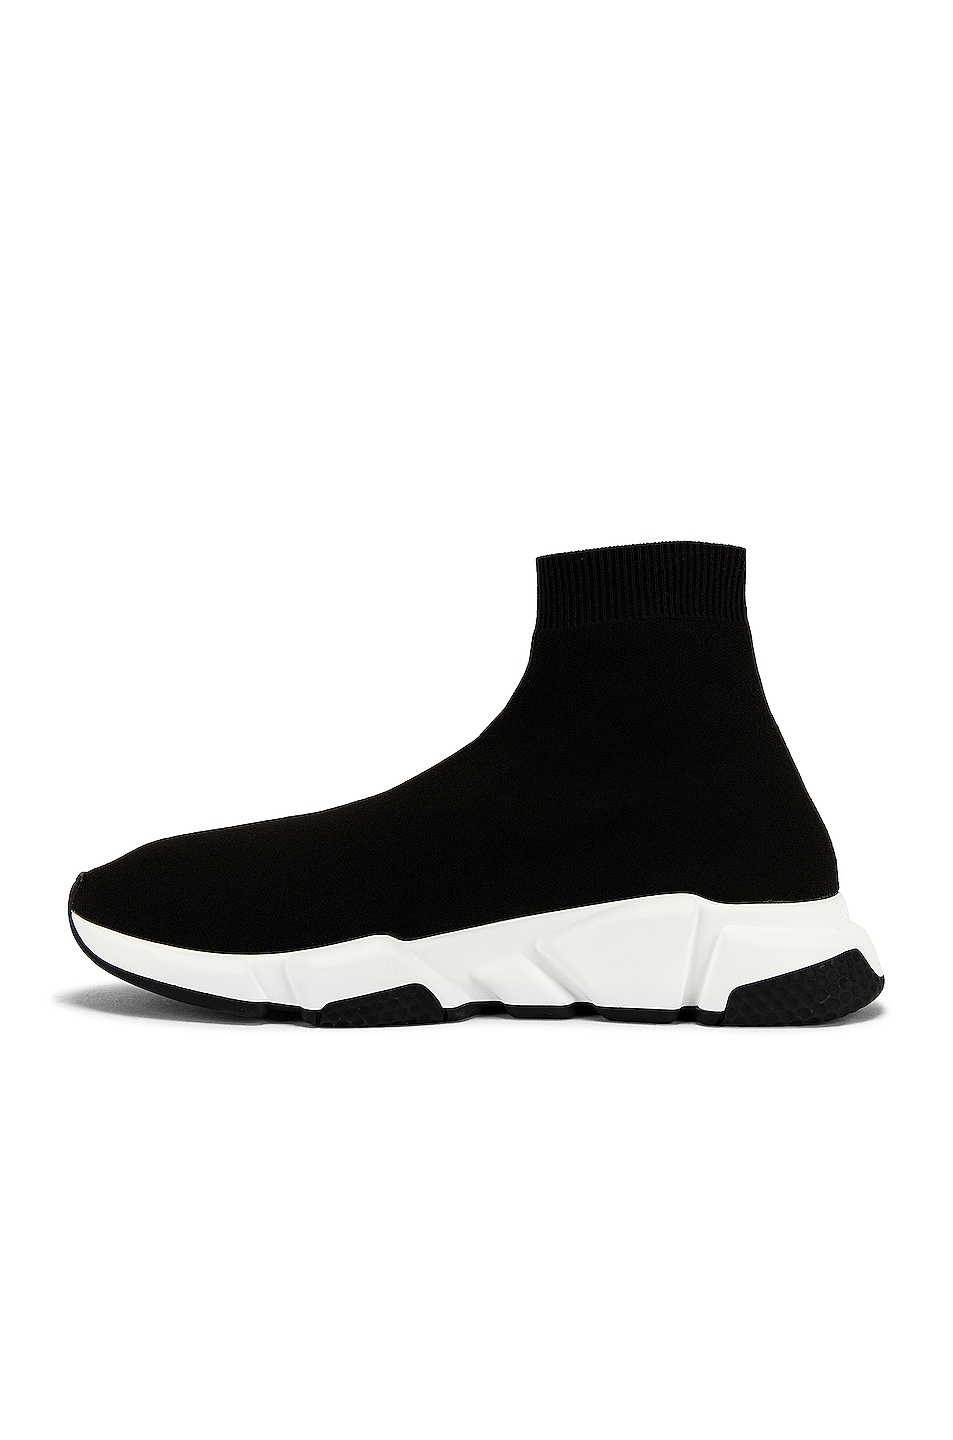 Image 5 of Balenciaga Speed Light Knit Sneaker in Black & White